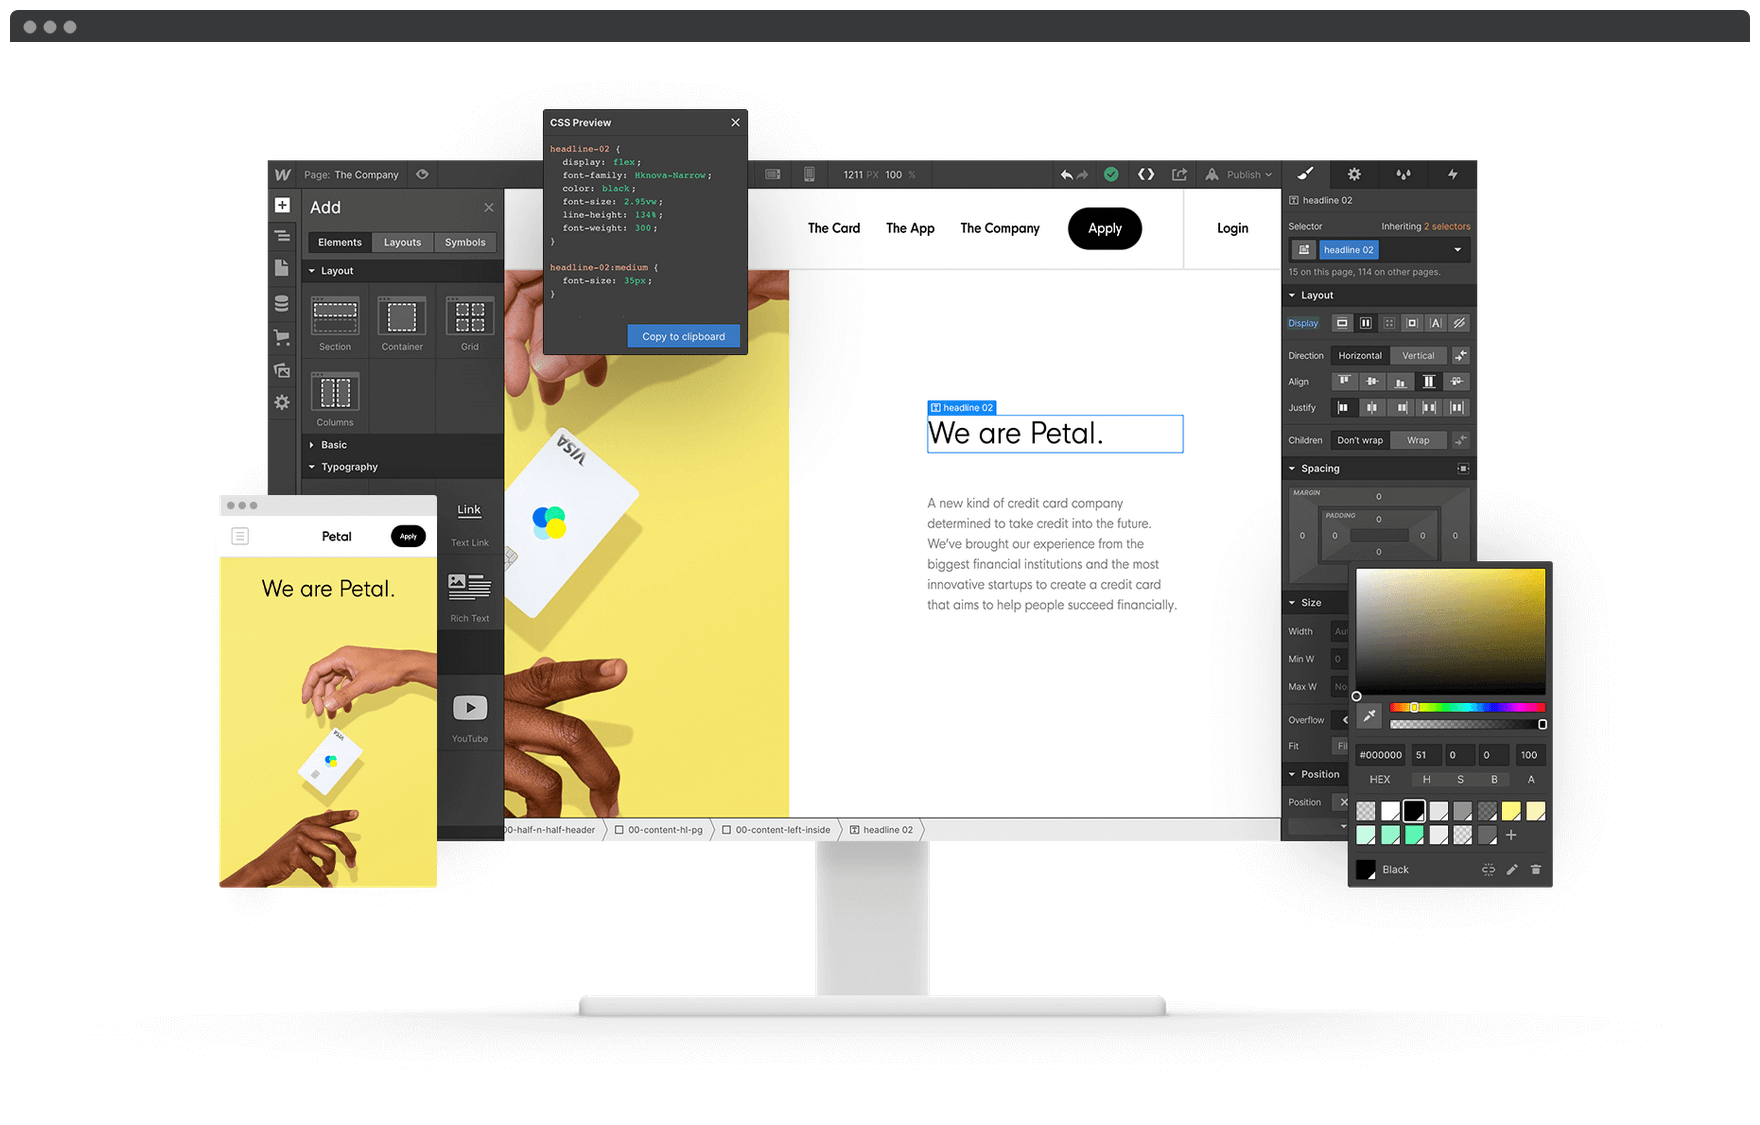 A showcase for the Webflow editor.